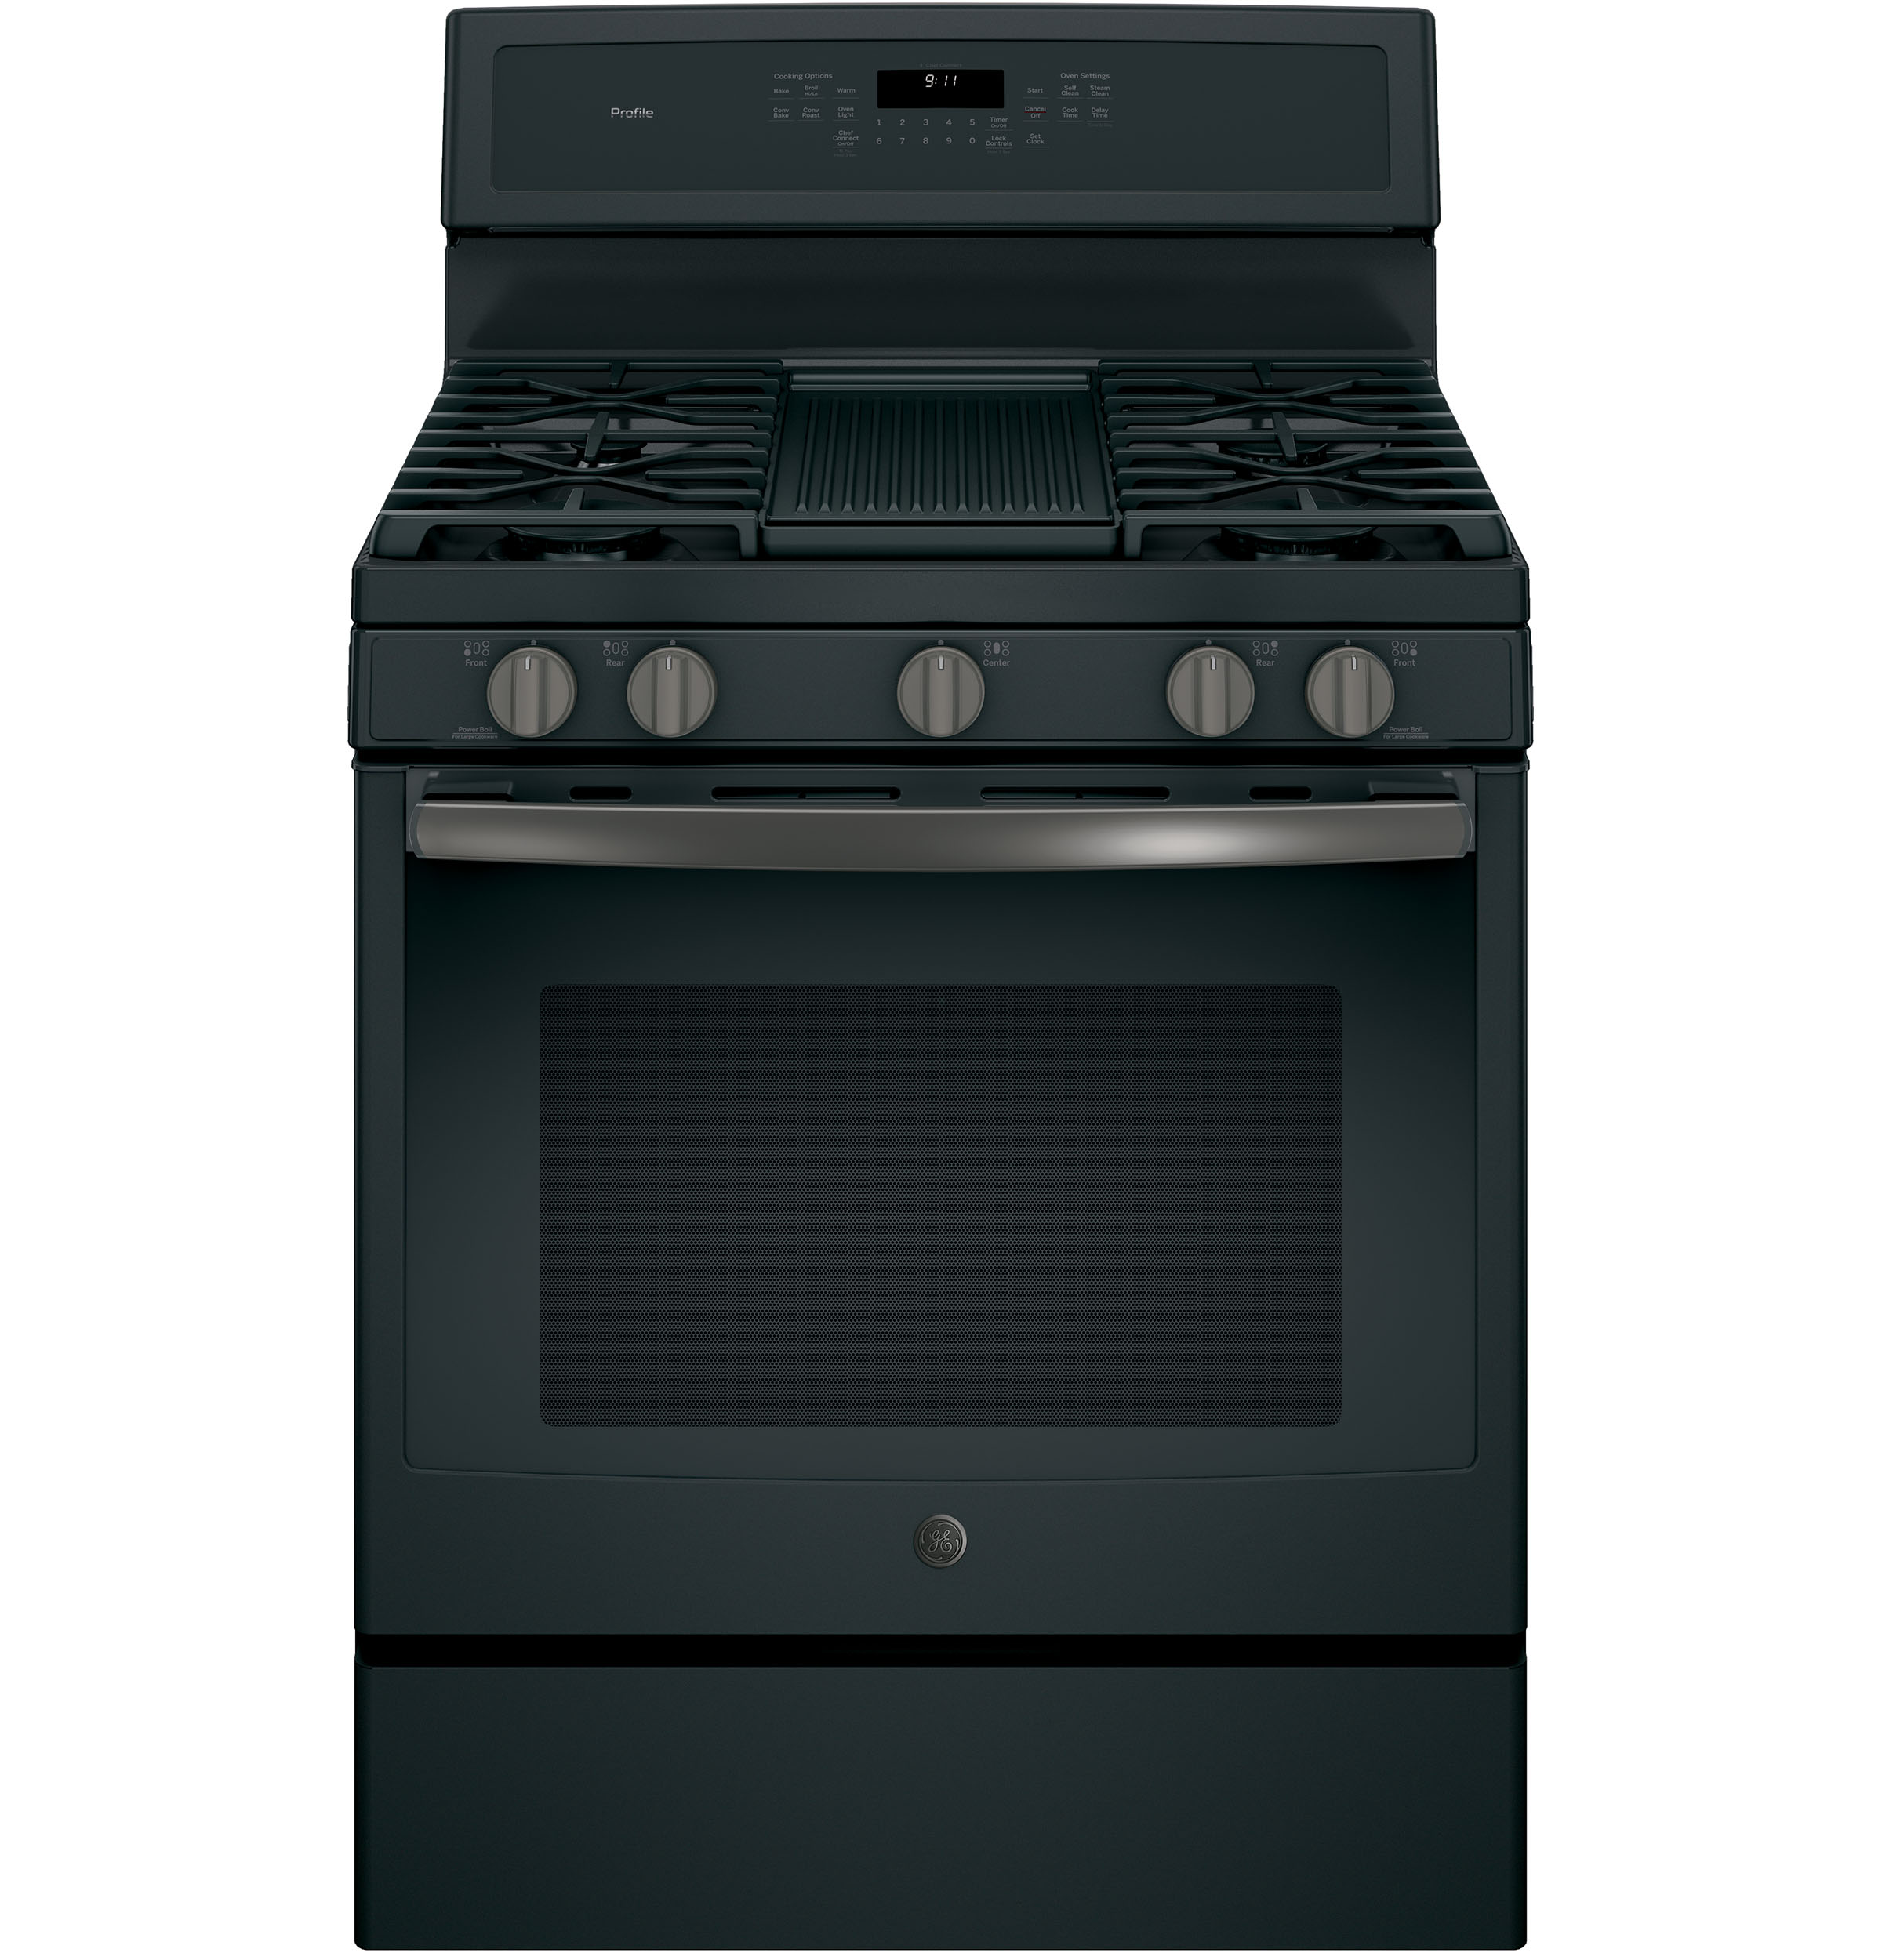 "Model: PGB911FEJDS | GE Profile GE Profile™ Series 30"" Free-Standing Gas Convection Range"